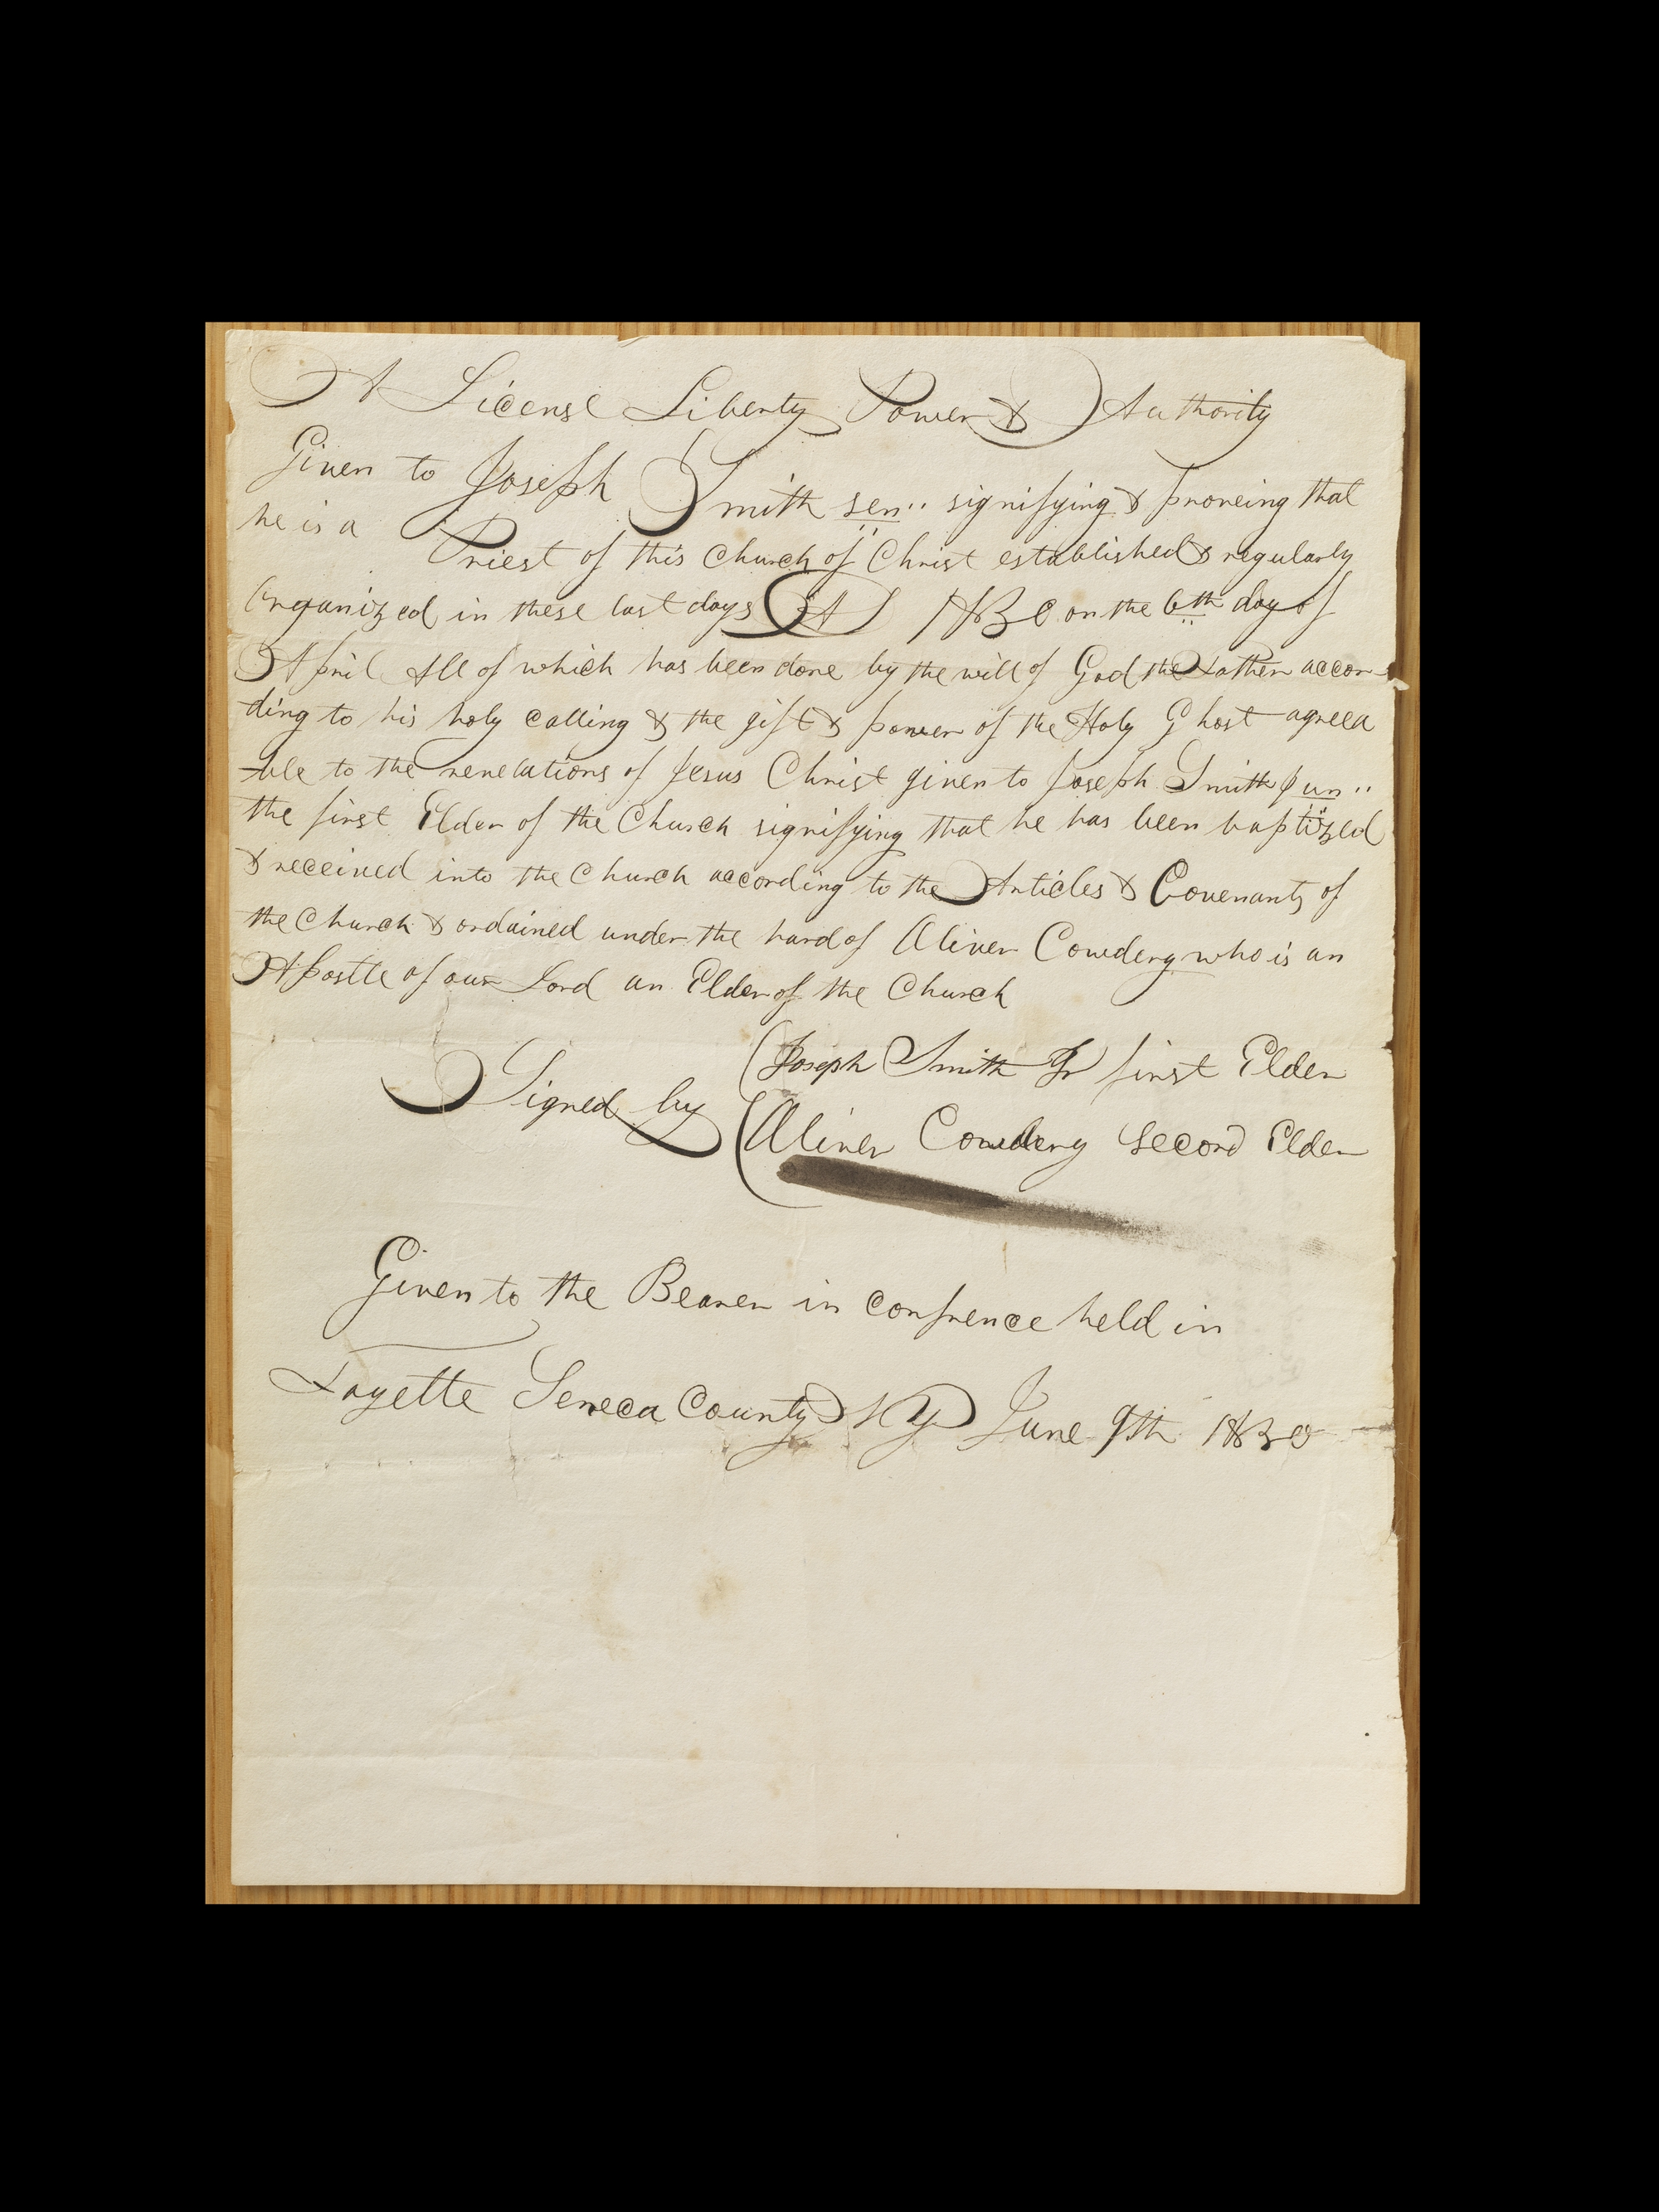 the joseph smith papers Thank you very much for your time and effort to share this with us.